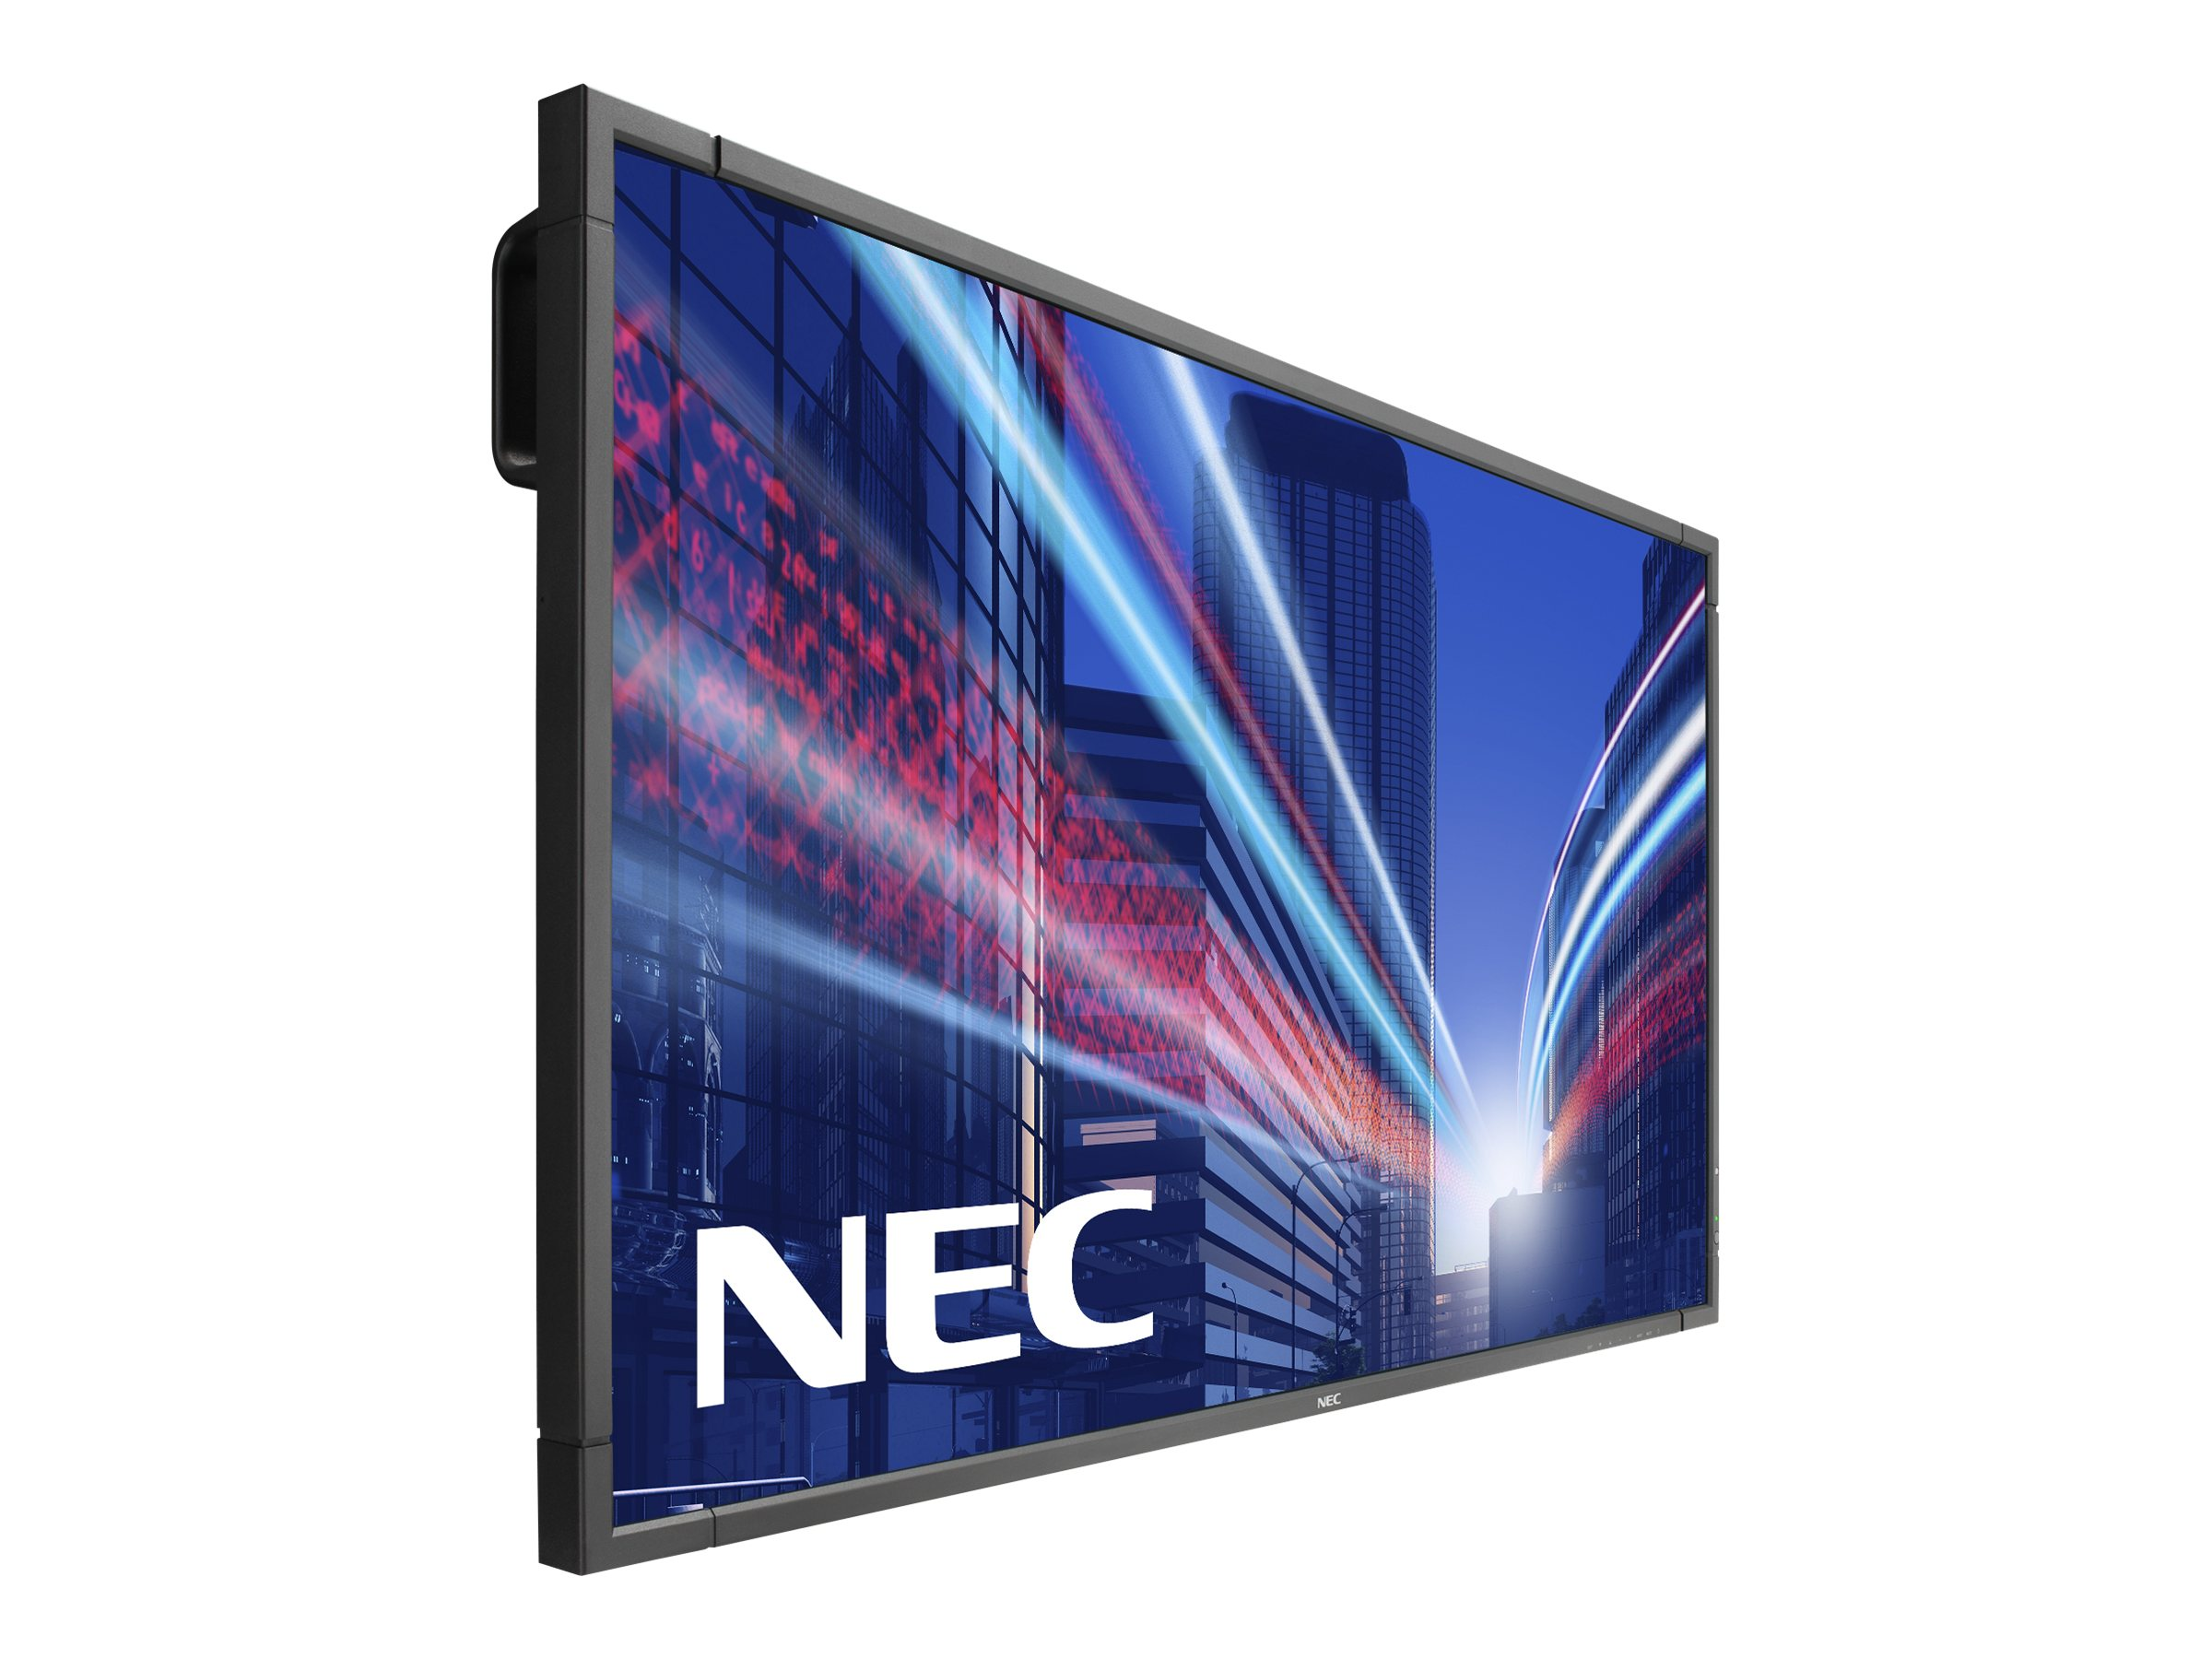 NEC 70 P703 Full HD LED-LCD Monitor, Black, P703, 16477508, Monitors - Large-Format LED-LCD